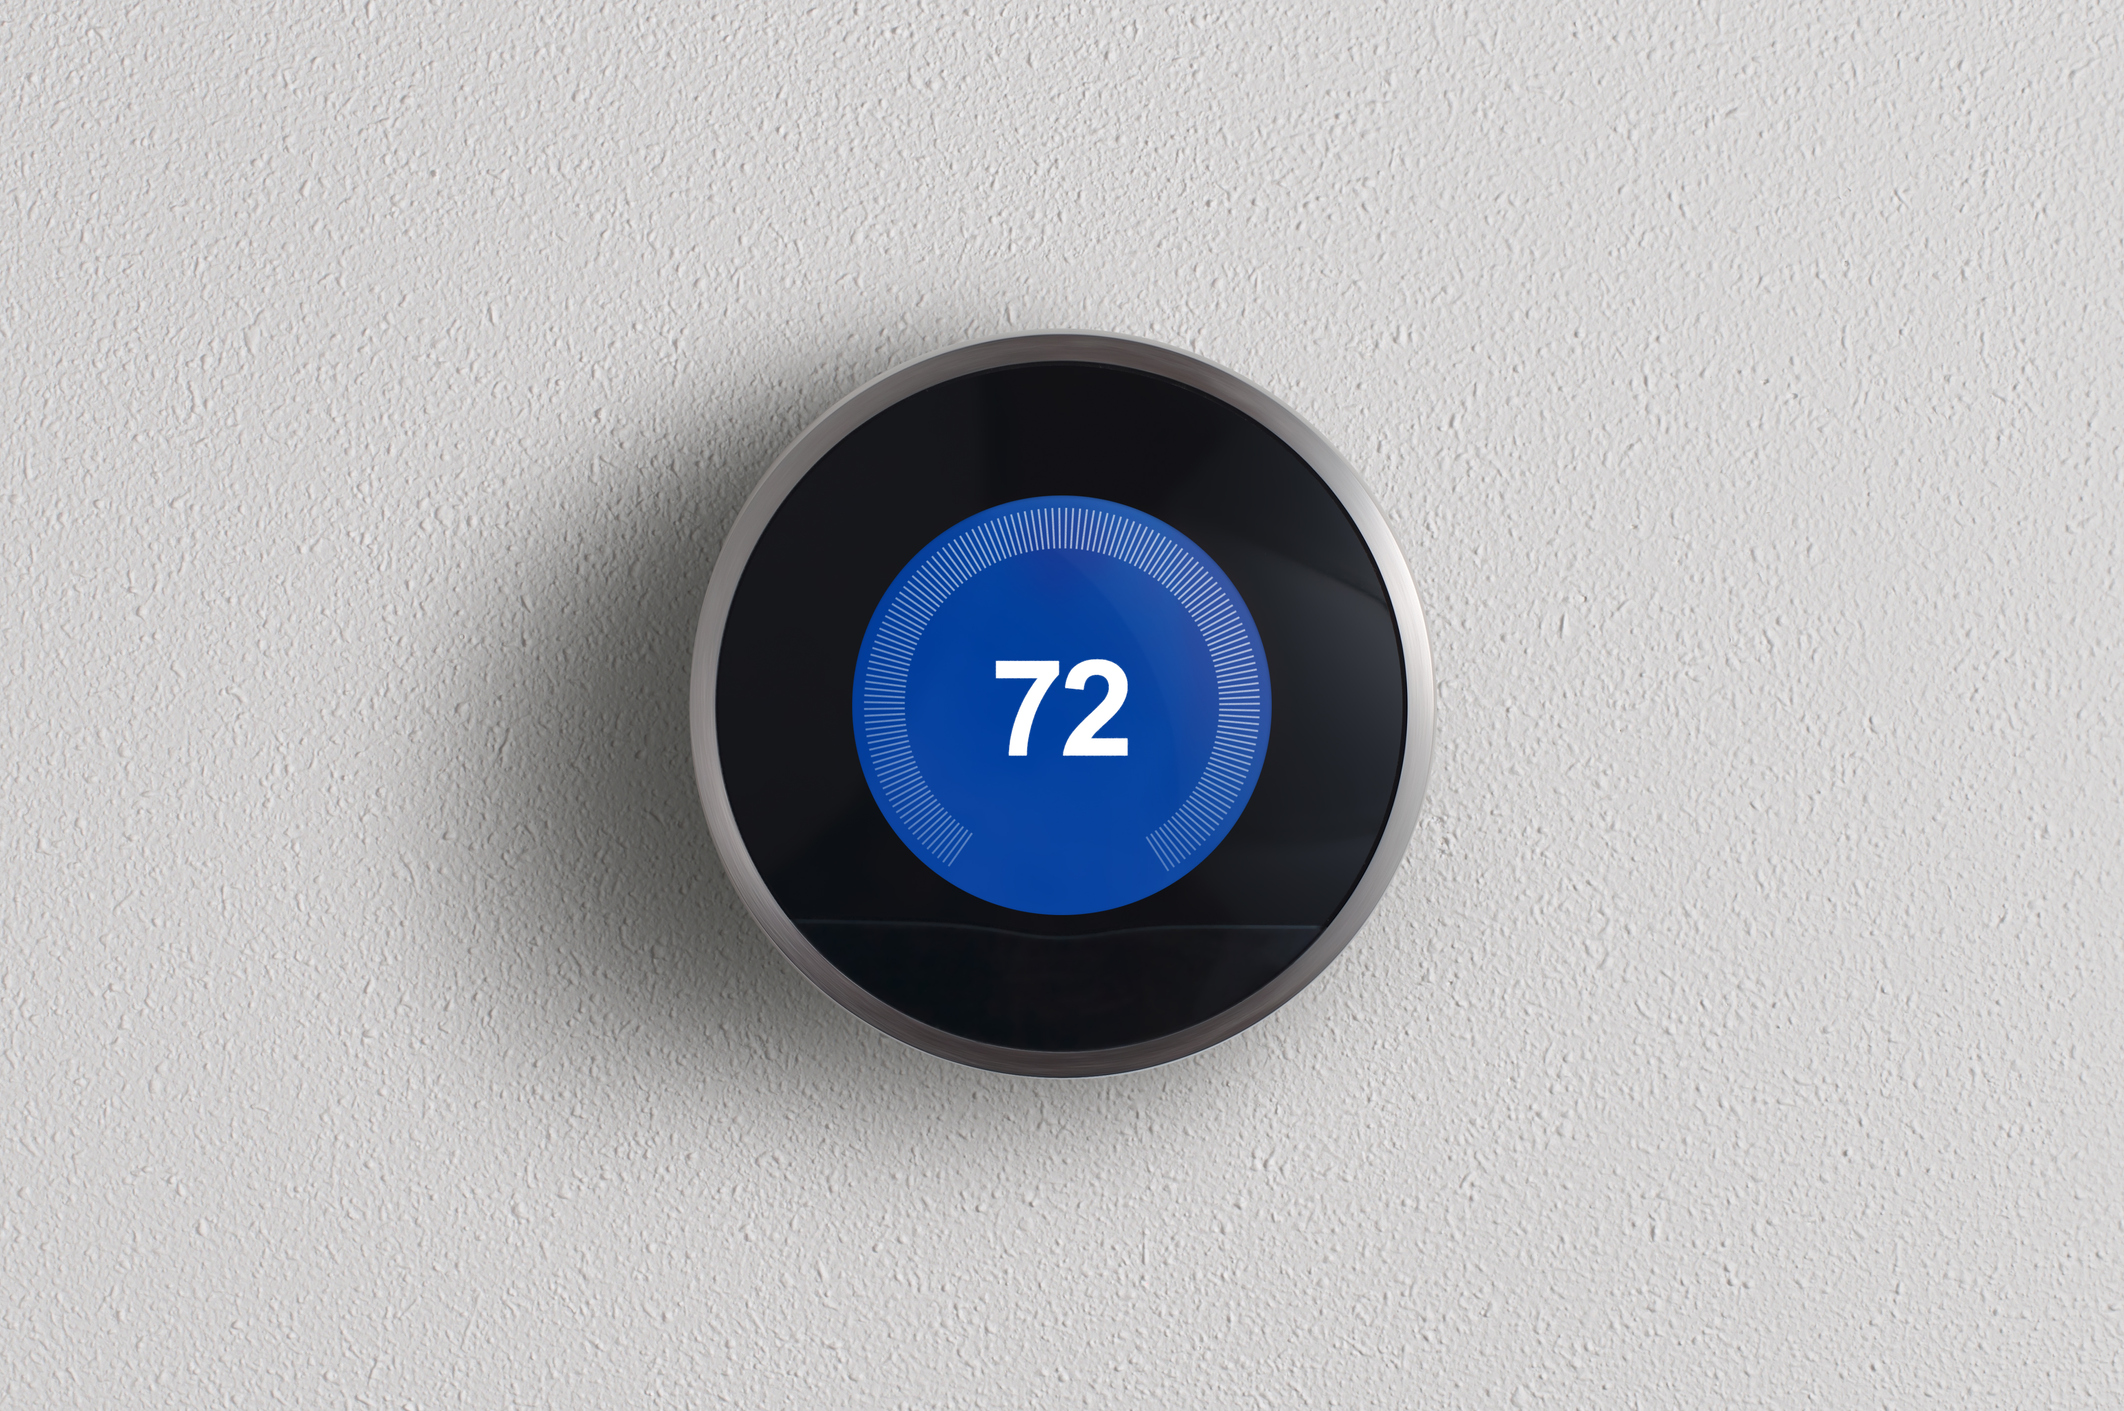 Feel Like Your Thermostat is Wrong? Guide to Common Thermostat Problems